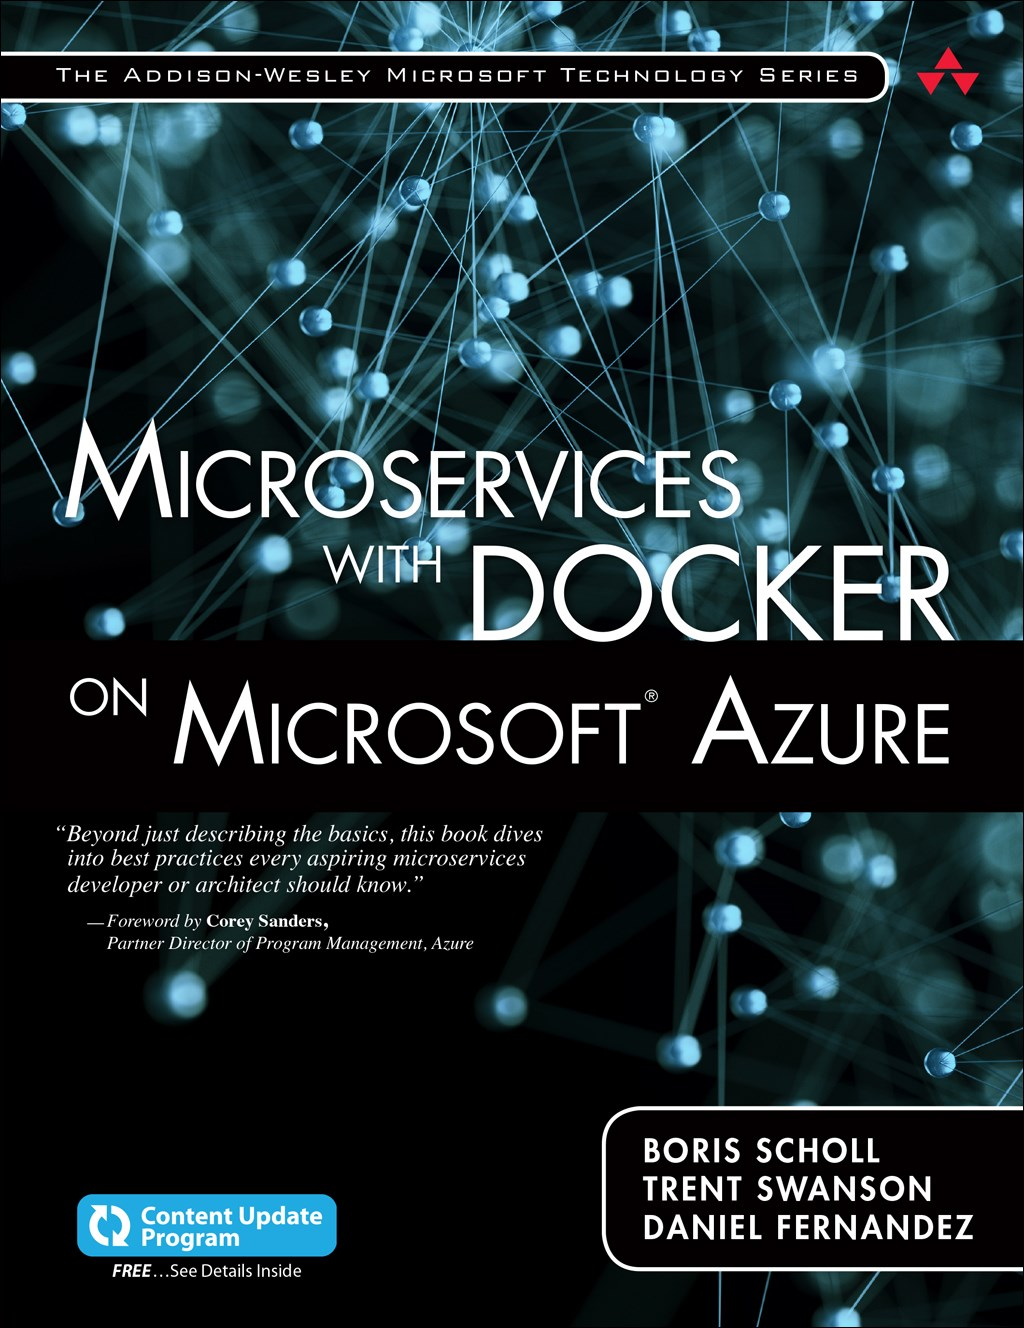 Microservices with Docker on Microsoft Azure (includes Content Update Program)